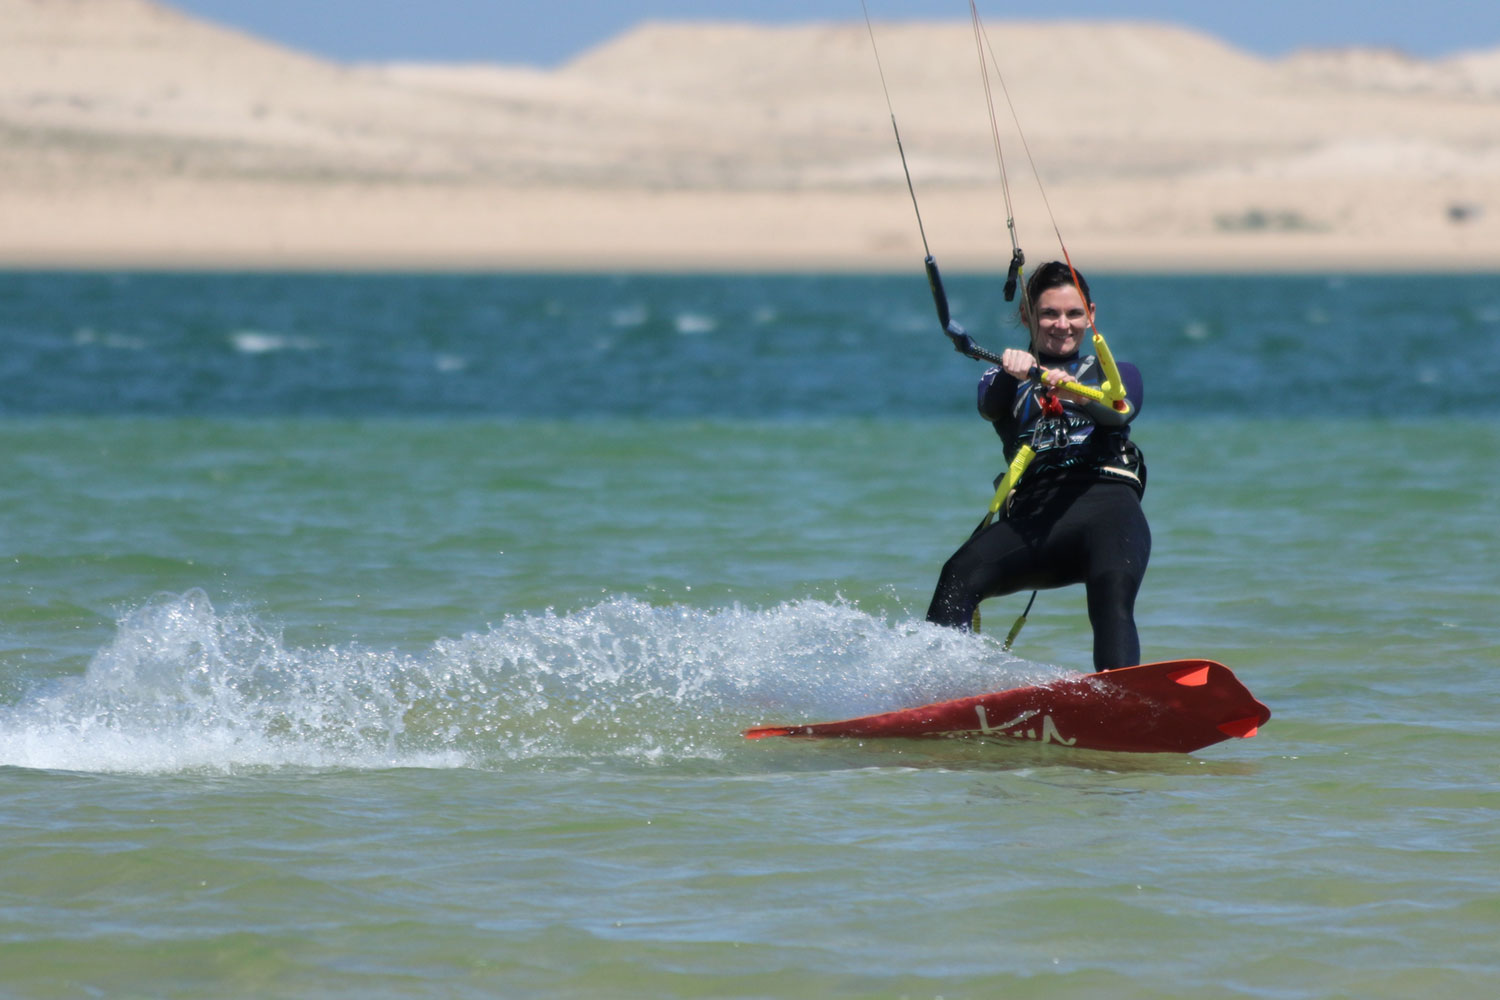 Kat-Crusing-2-Dakhla-Dreamin-Kitesurfing-Coaching-Holiday.jpg